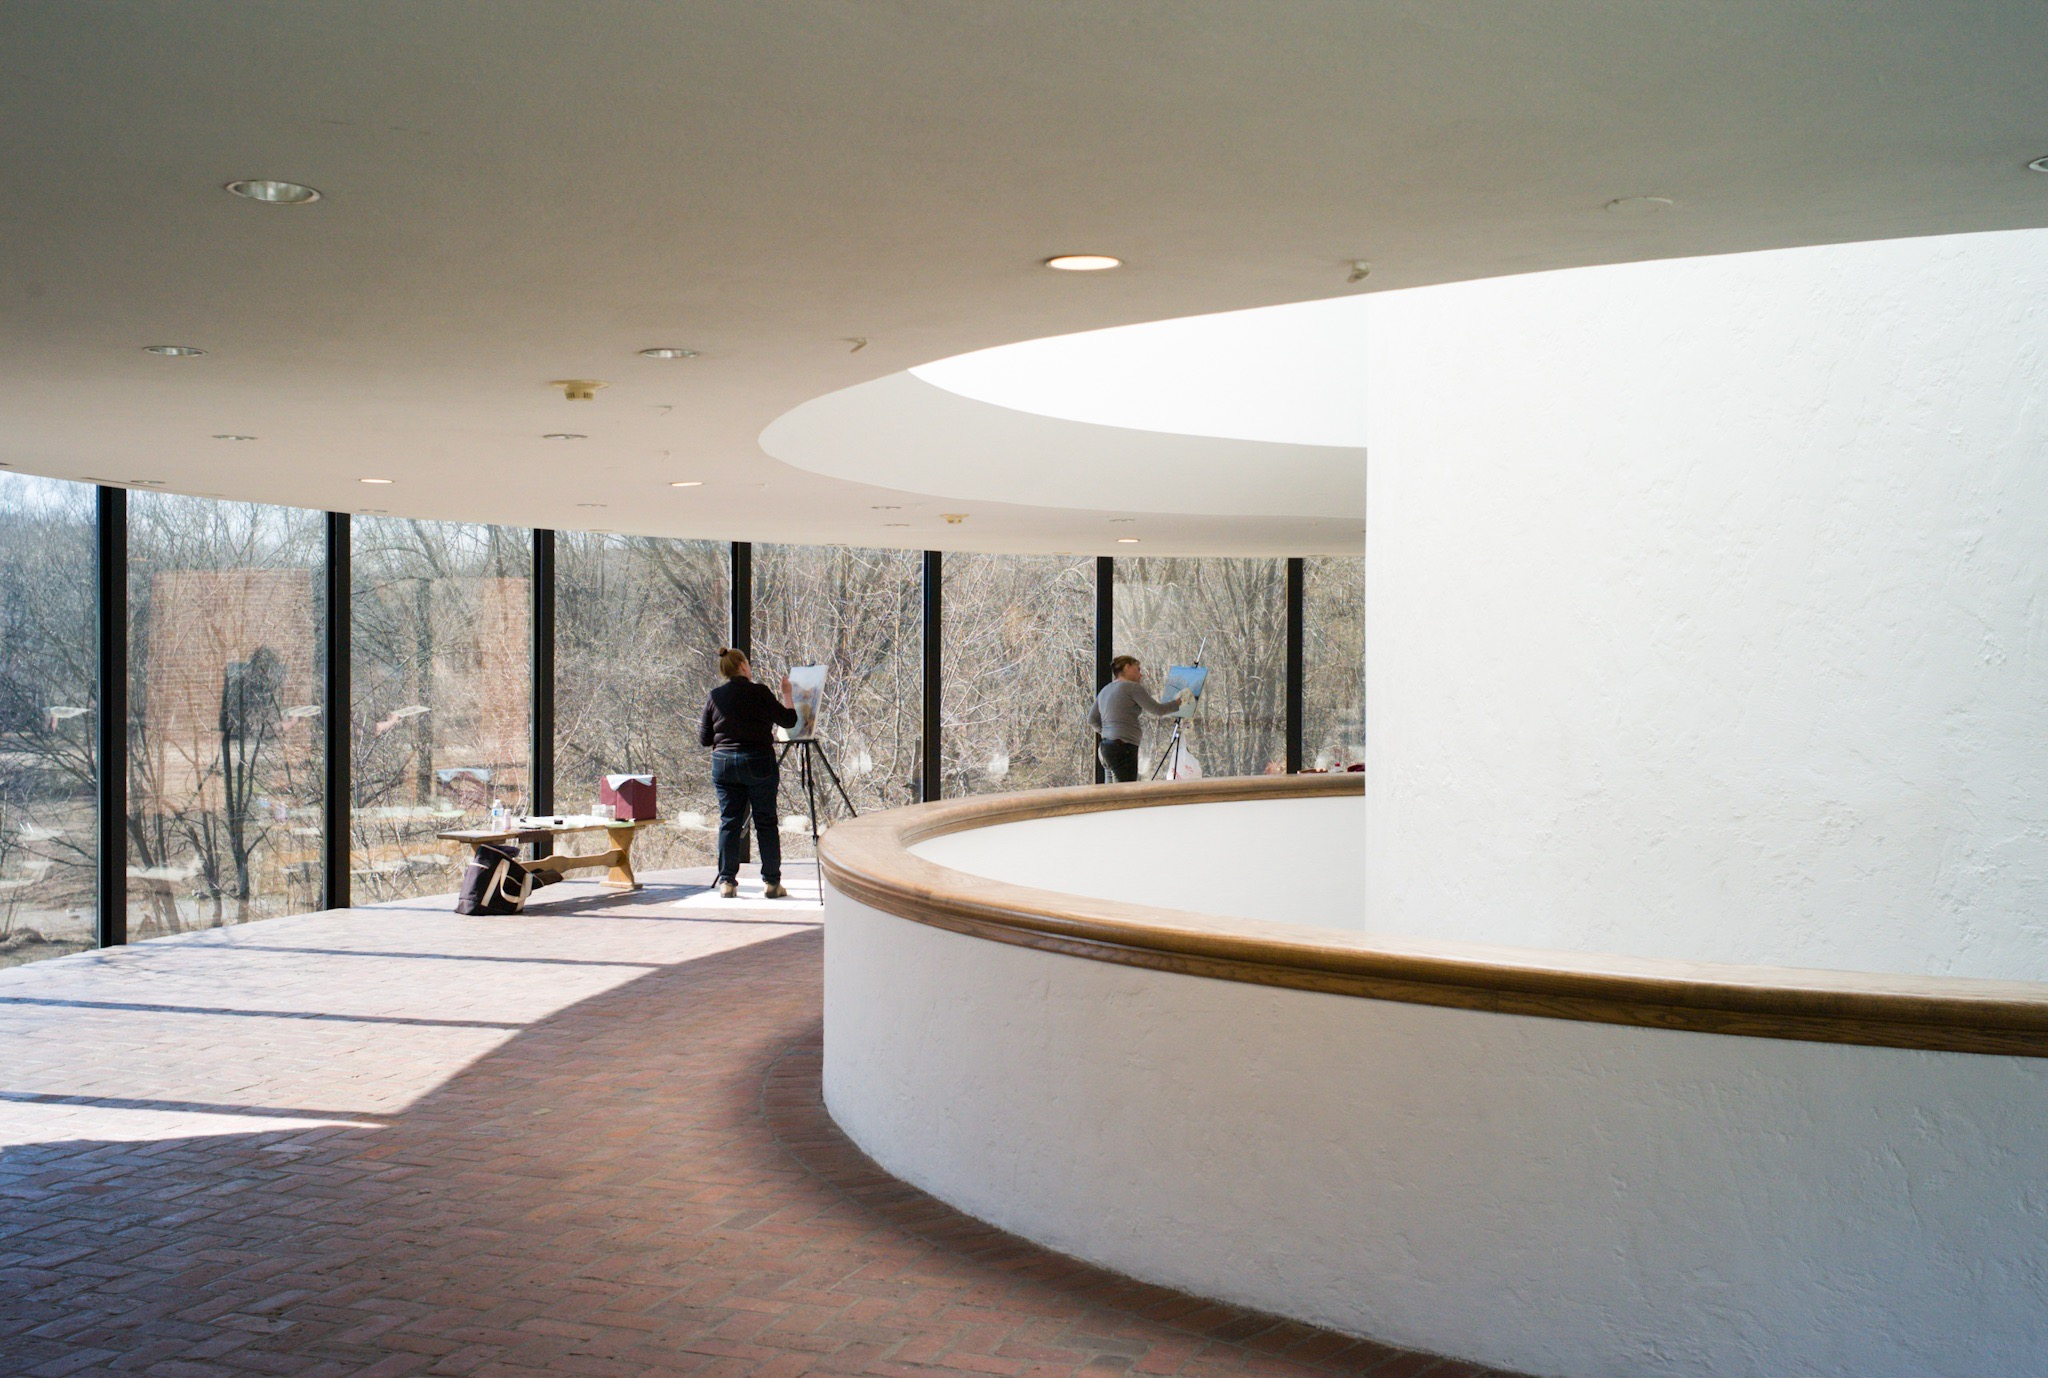 Second level of the Brandywine River Art Museum overlooking the Brandywine River.Photo by Daniel Chow